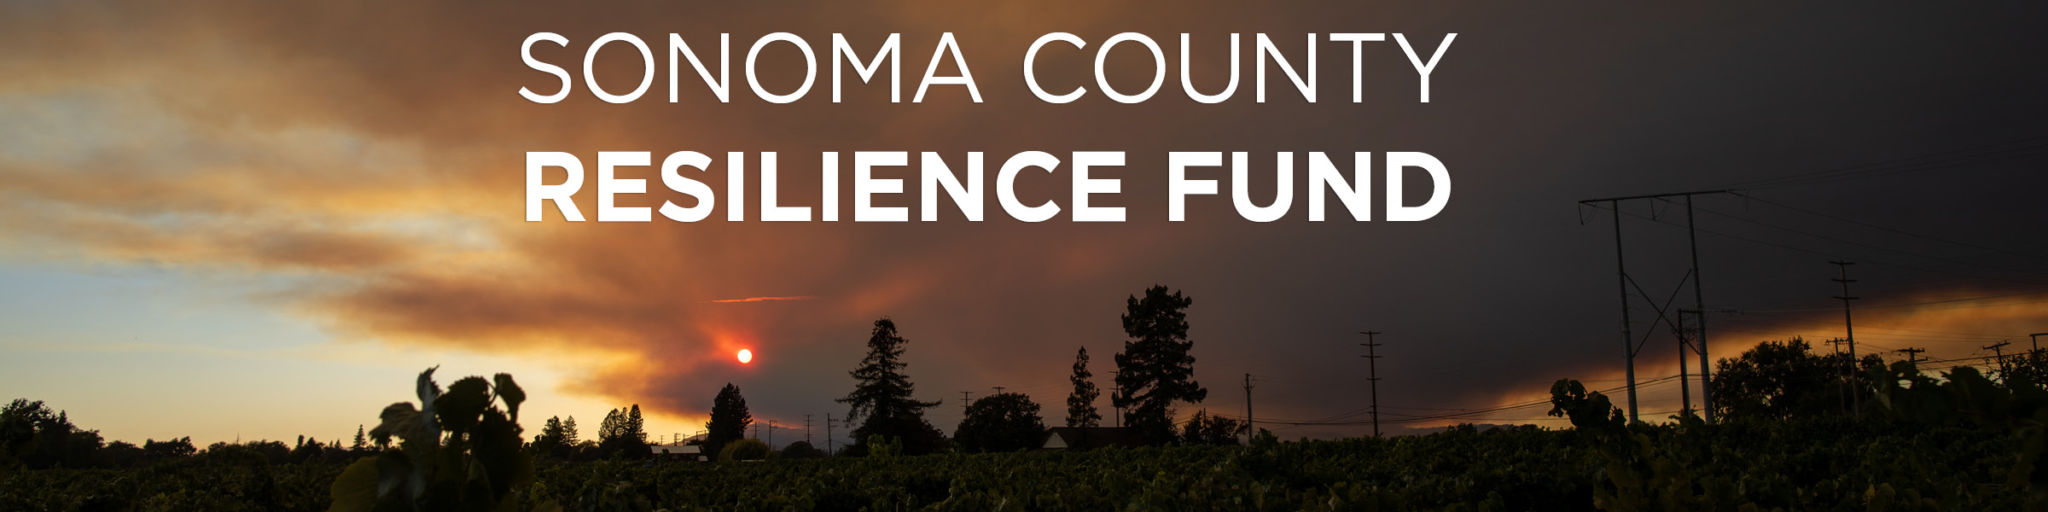 The Sonoma County Resilience Fund